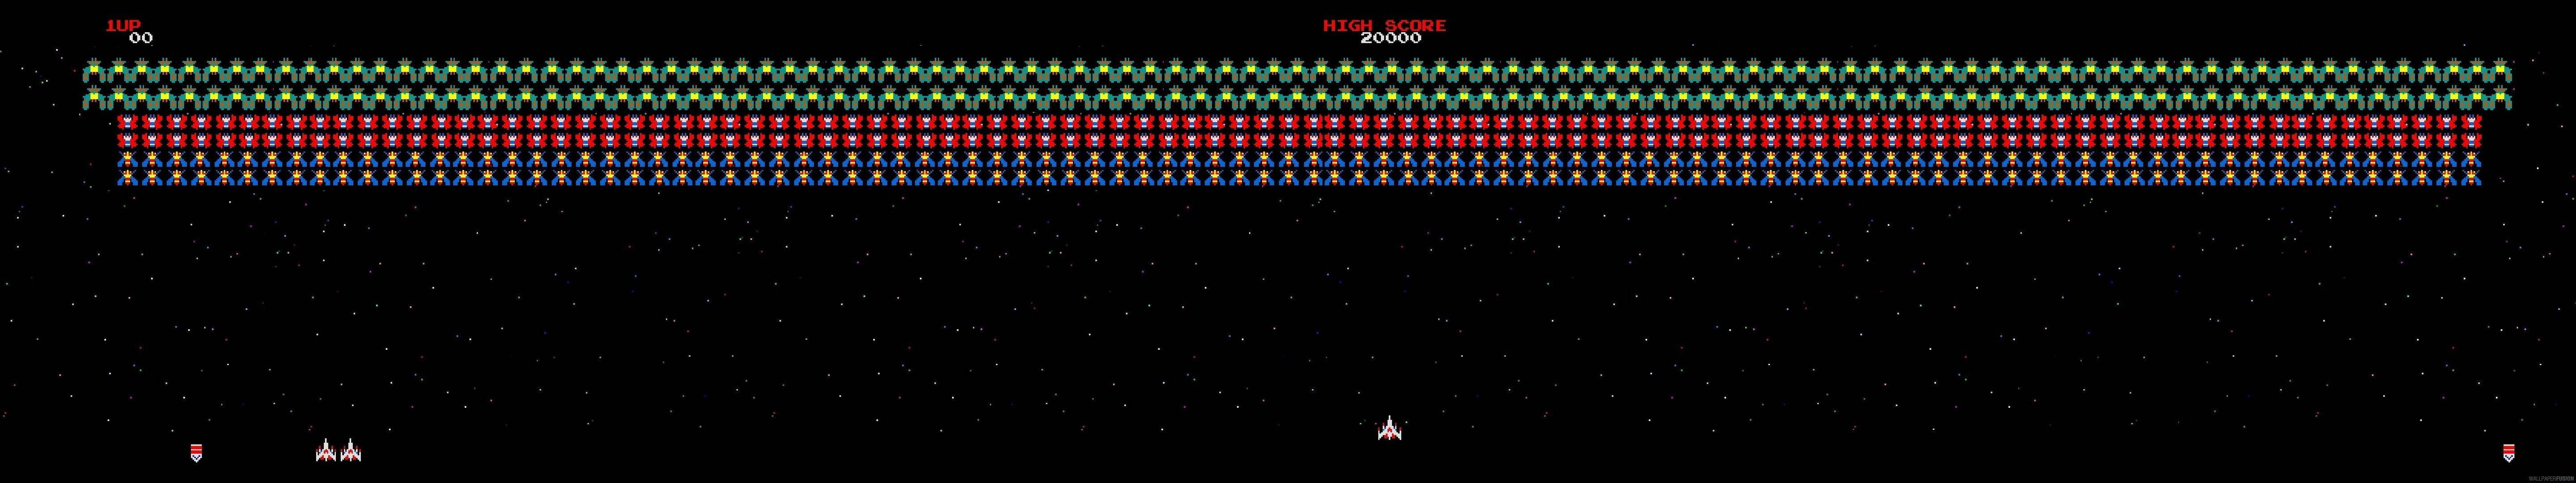 Galaga HD Wallpapers and Background Images   stmednet 5760x1080